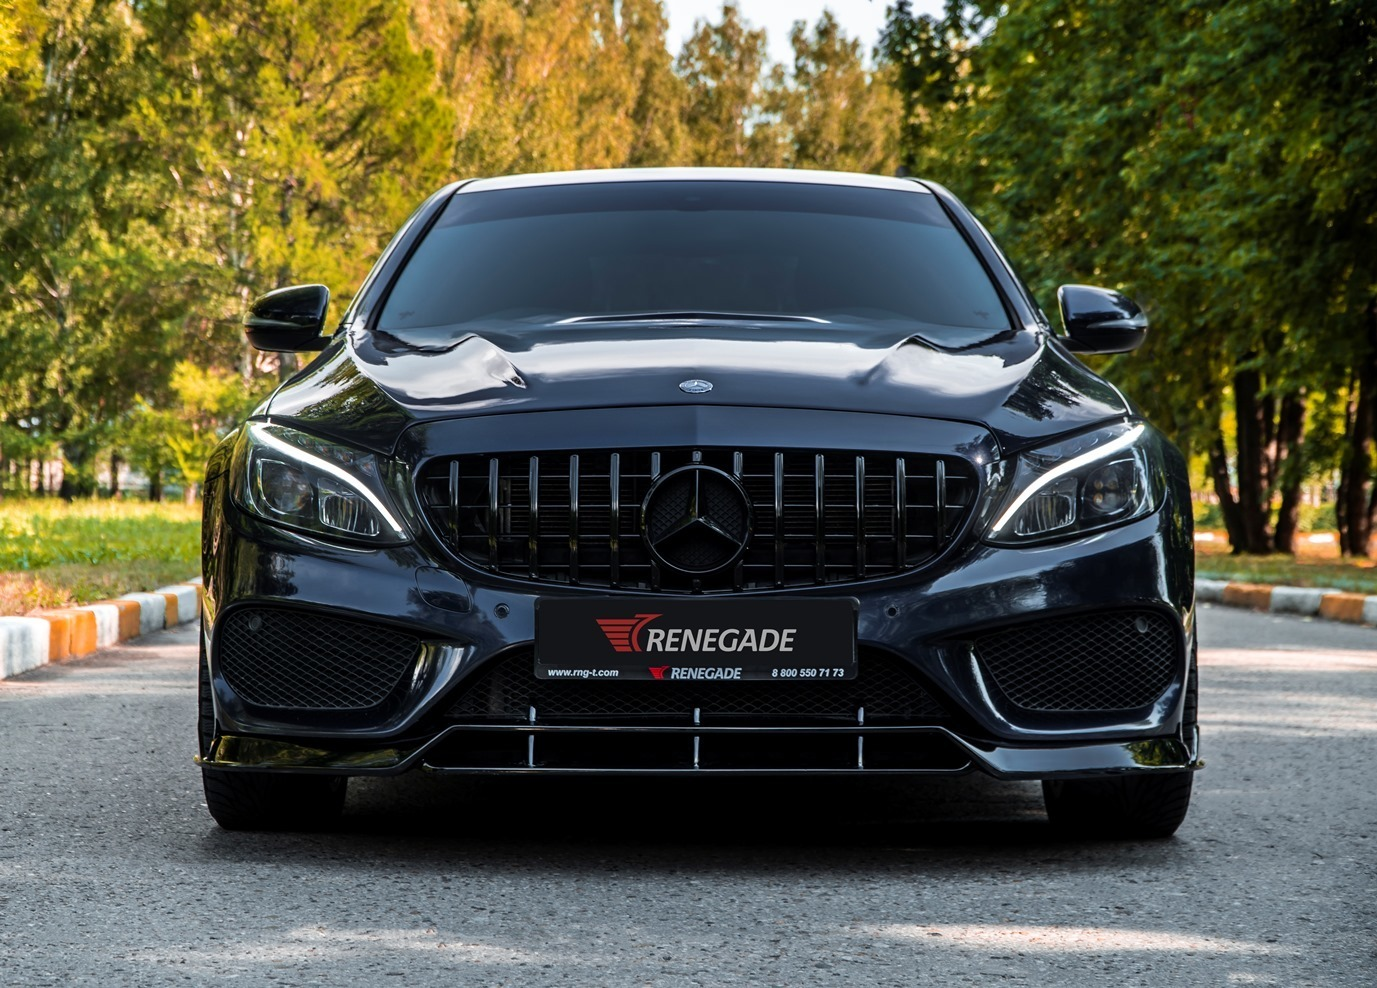 Renegade body kit for Mercedes Benz C-Class W205 carbon